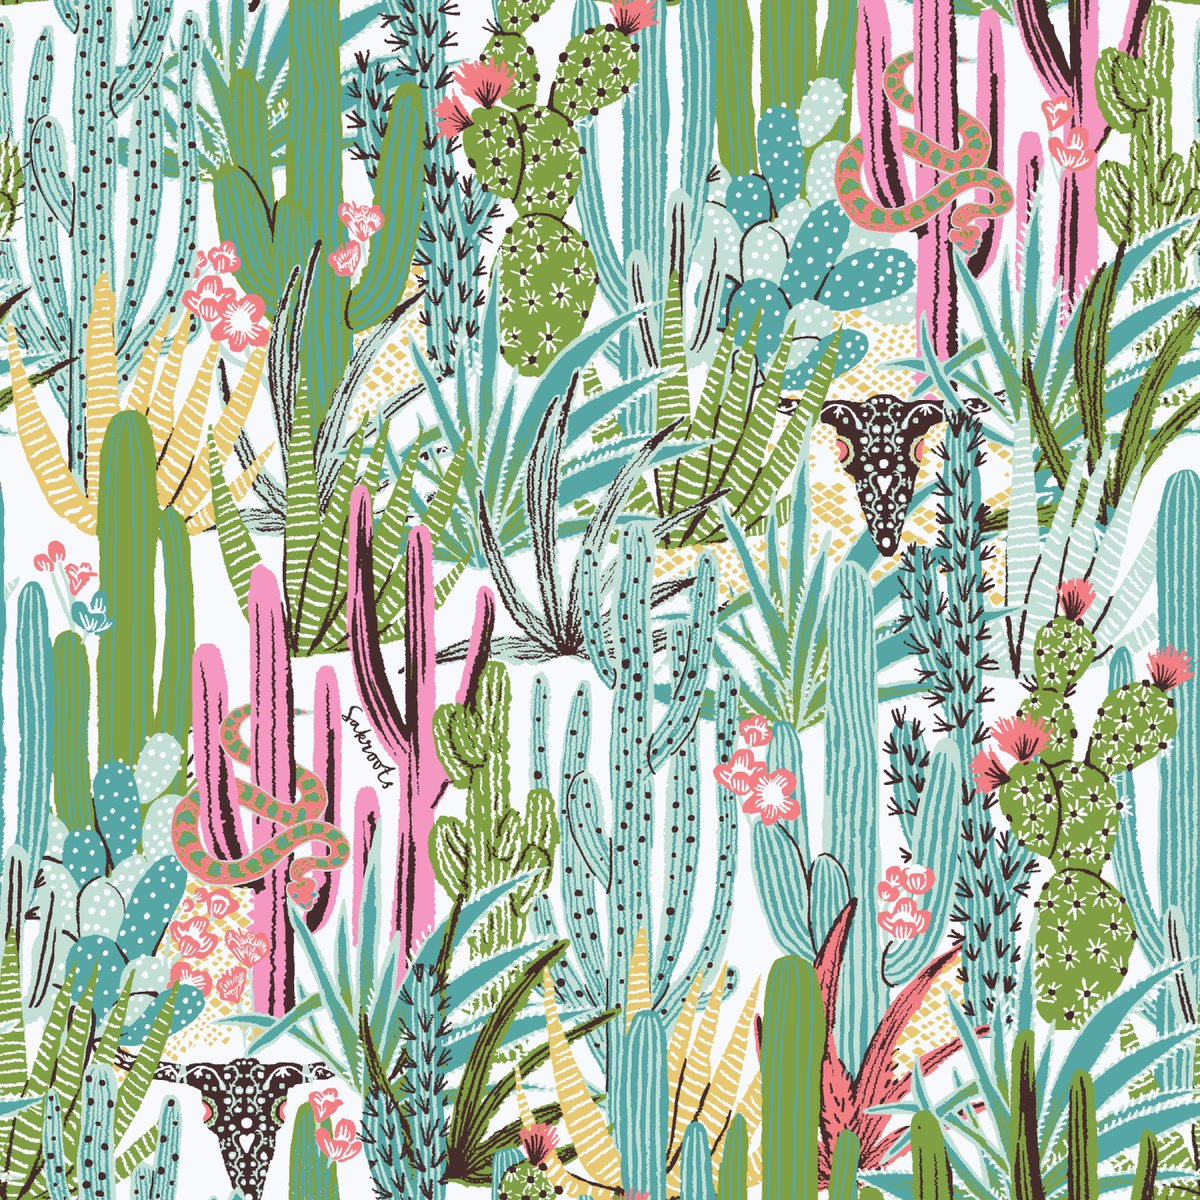 BLOG — JANE NEWLAND